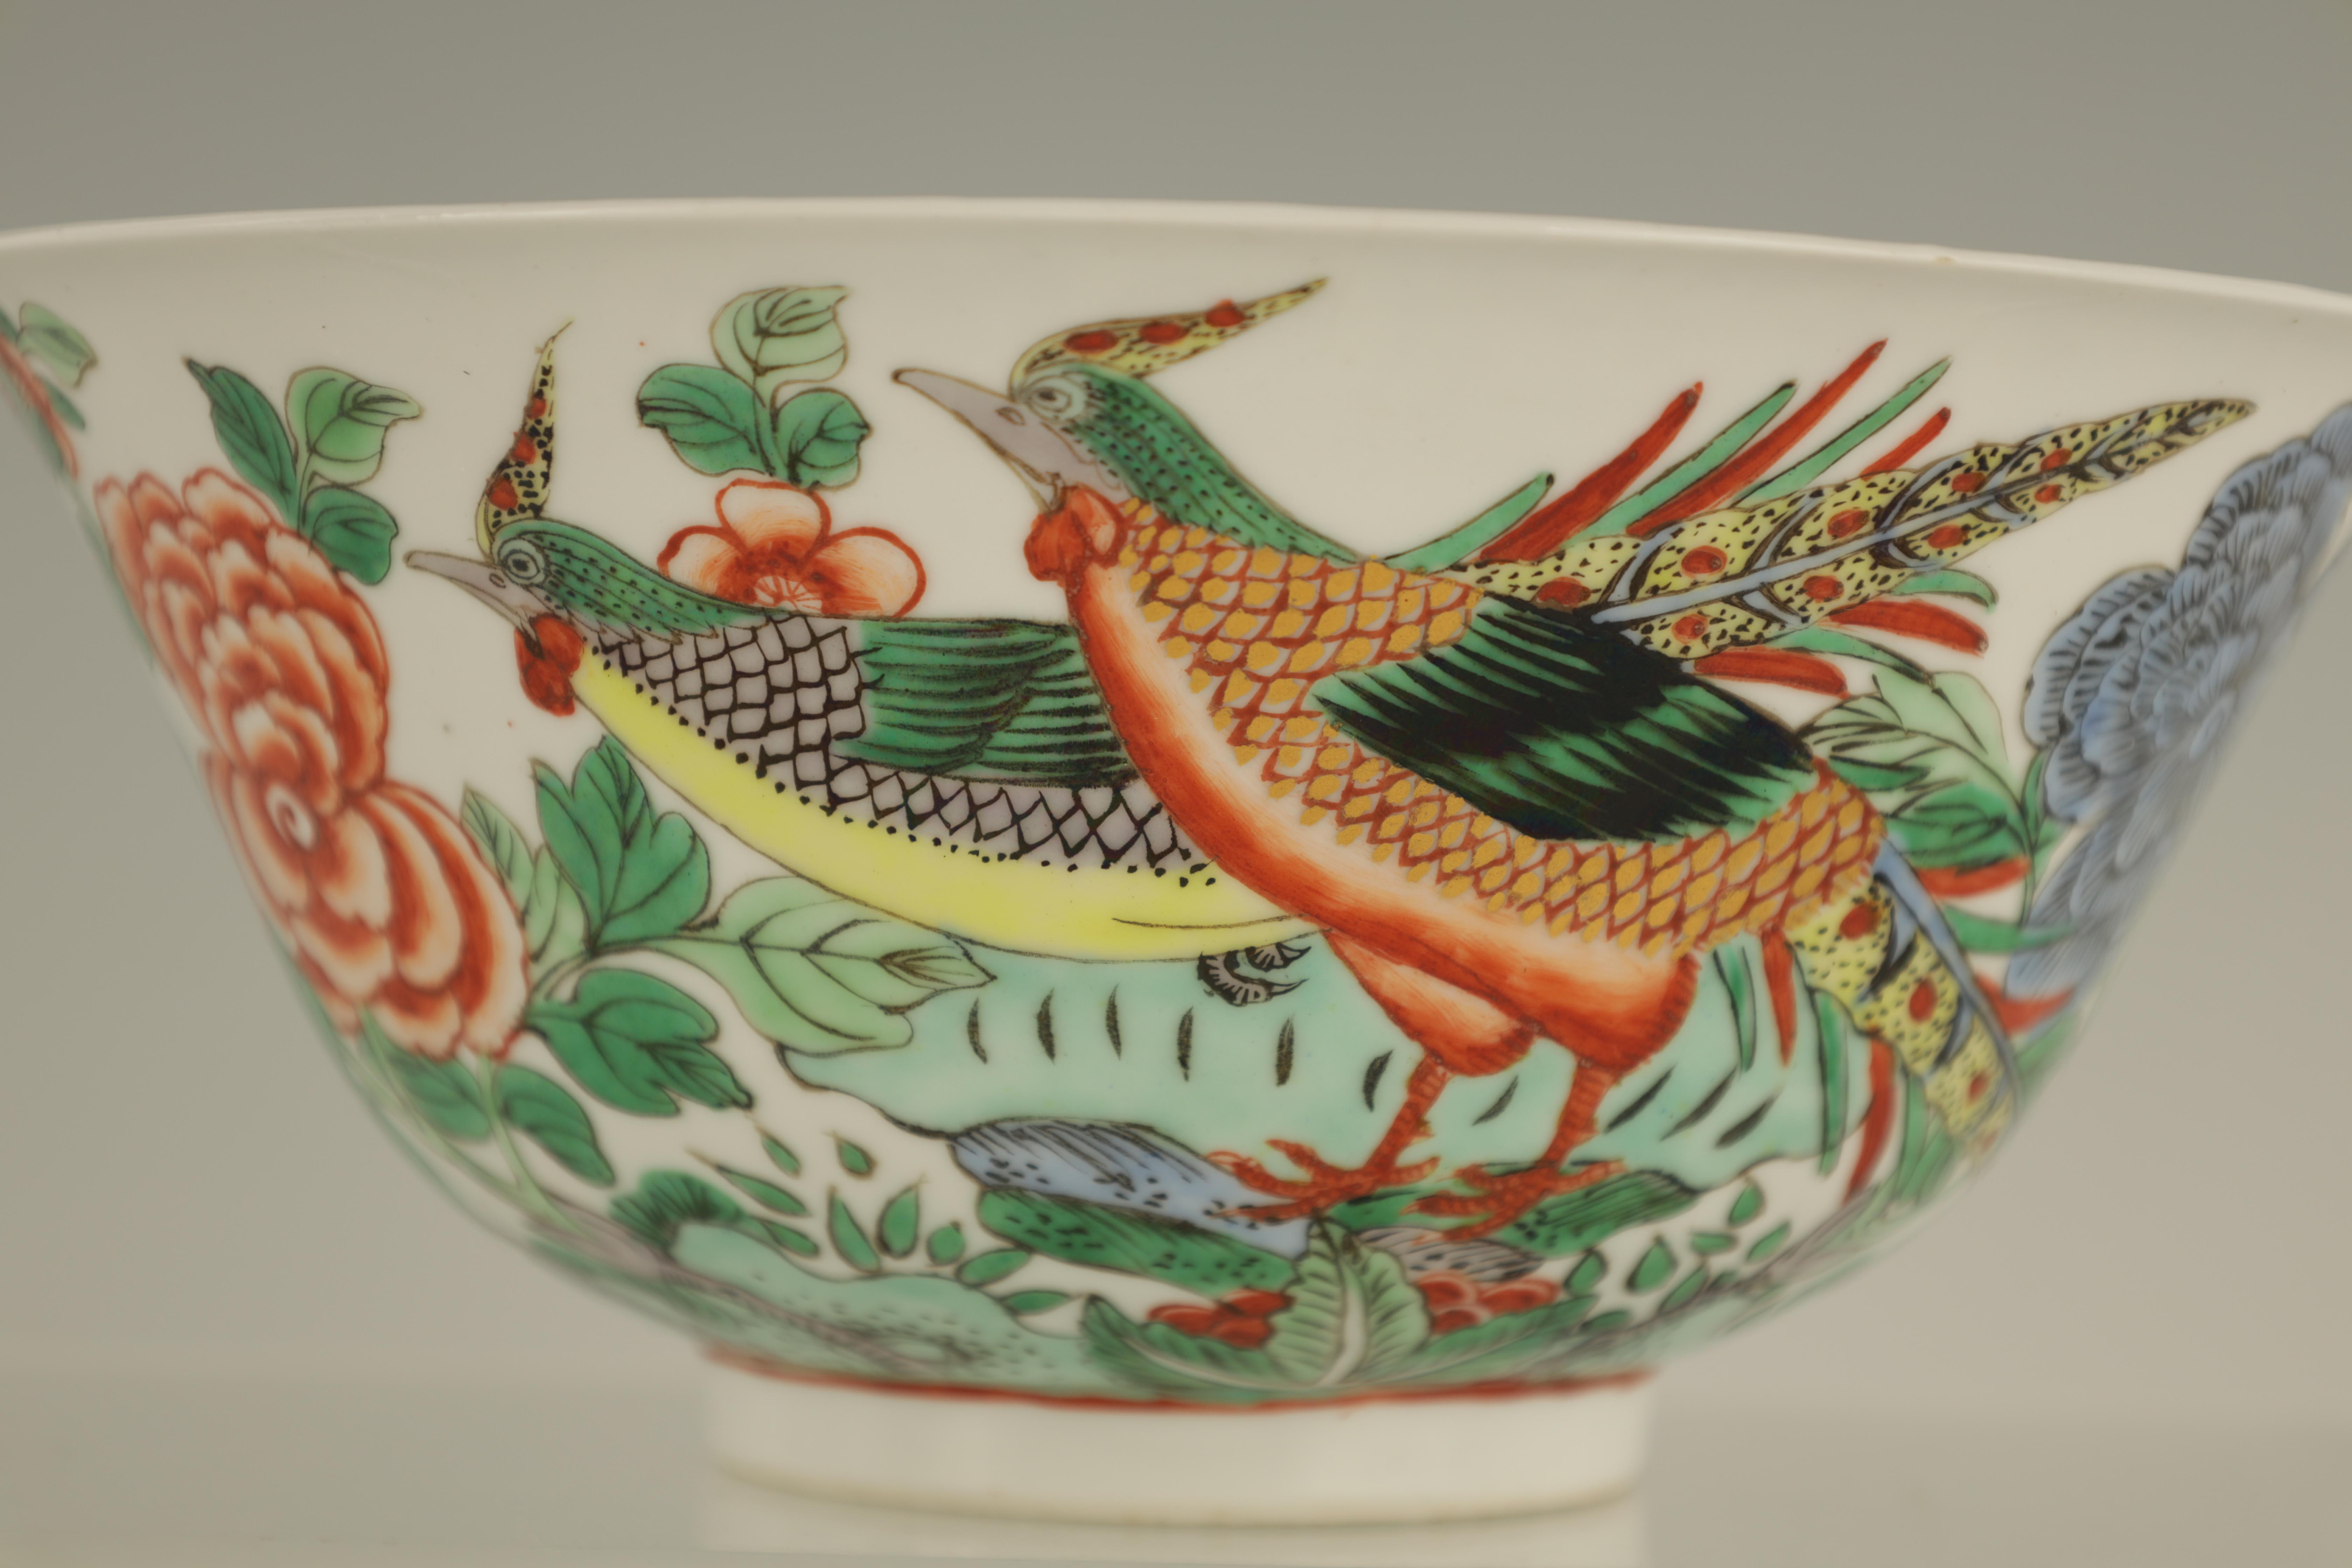 AN 18TH CENTURY CHINESE FAMILLE VERTE PORCELAIN BOWL BEARING KANGXI MARKS decorated with birds - Image 2 of 7